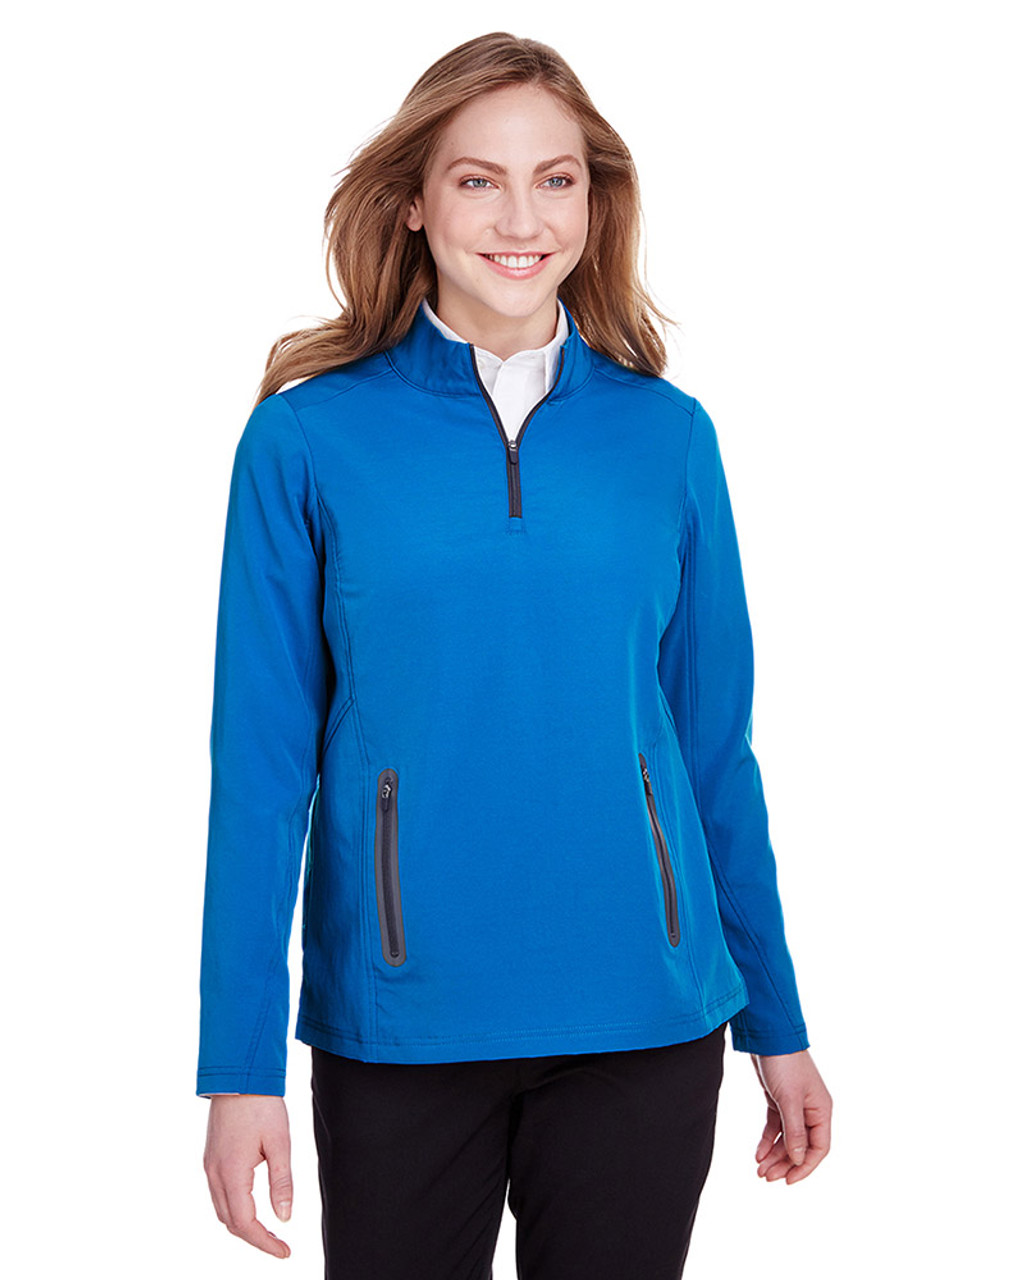 Olympic Blue/Carbon - NE401W Ash City - North End Ladies' Quest Stretch Quarter-Zip Sweatshirt | Blankclothing.ca